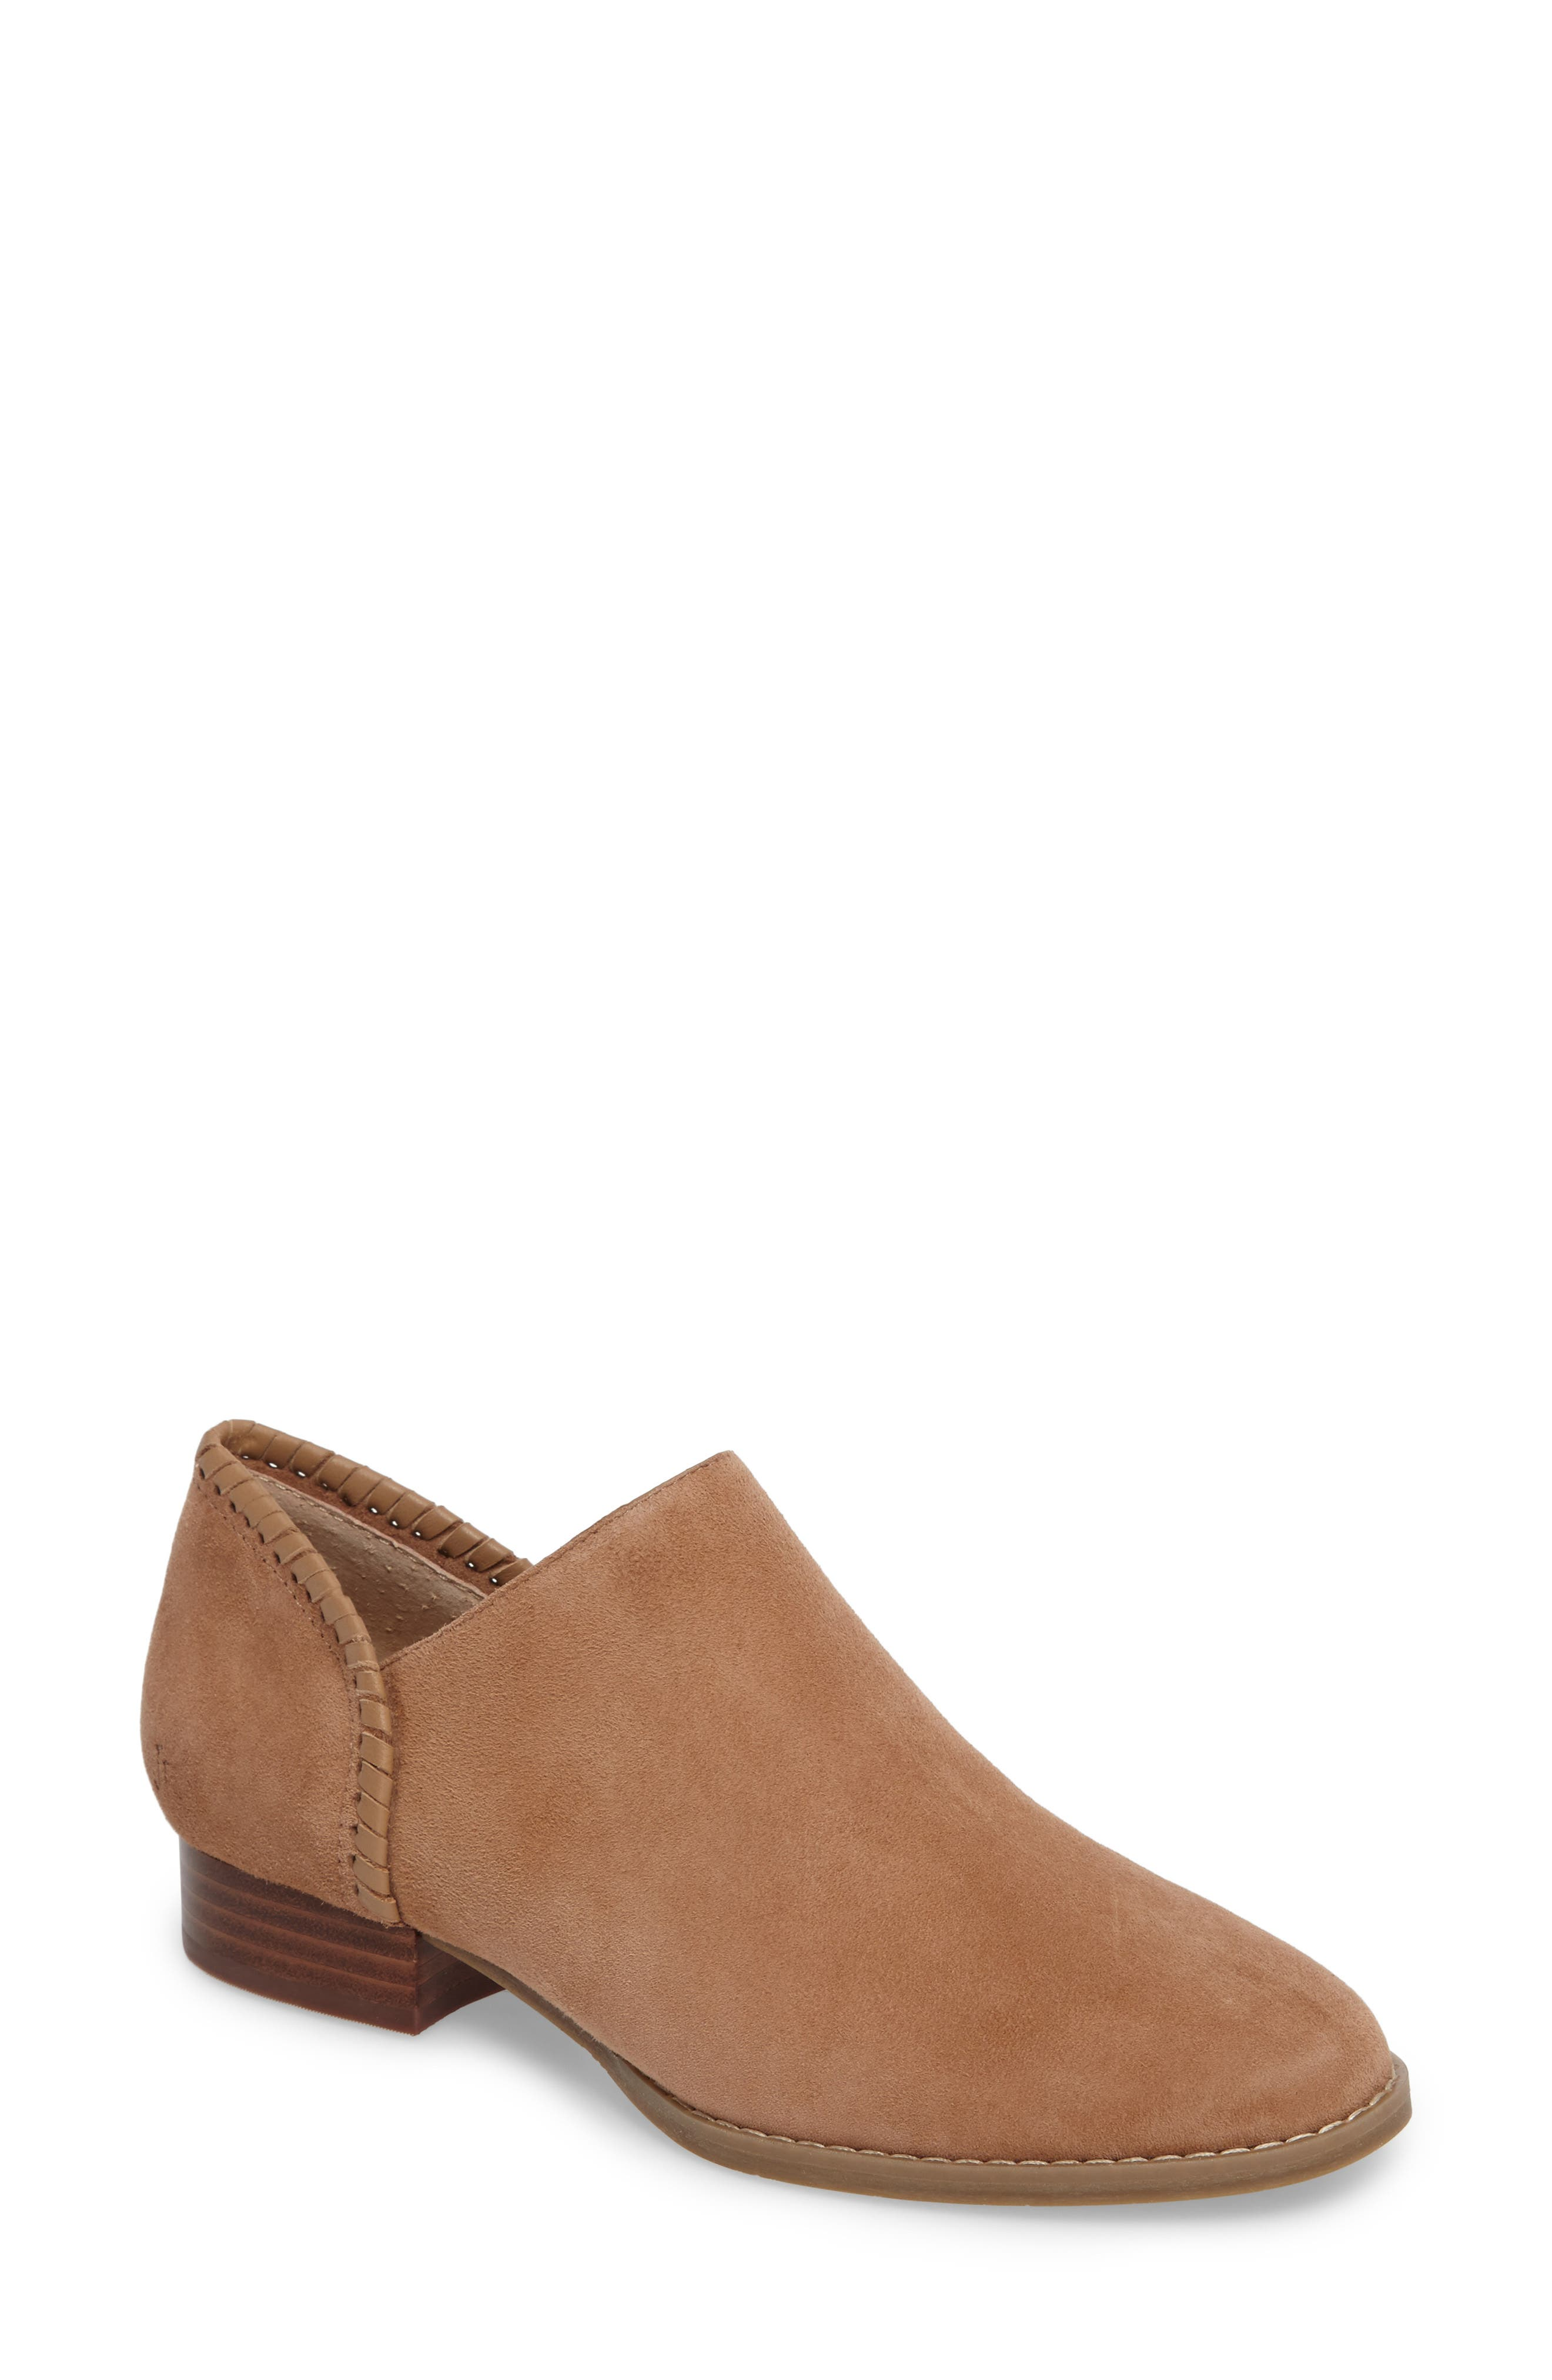 Main Image - Jack Rogers Avery Low Bootie (Women)